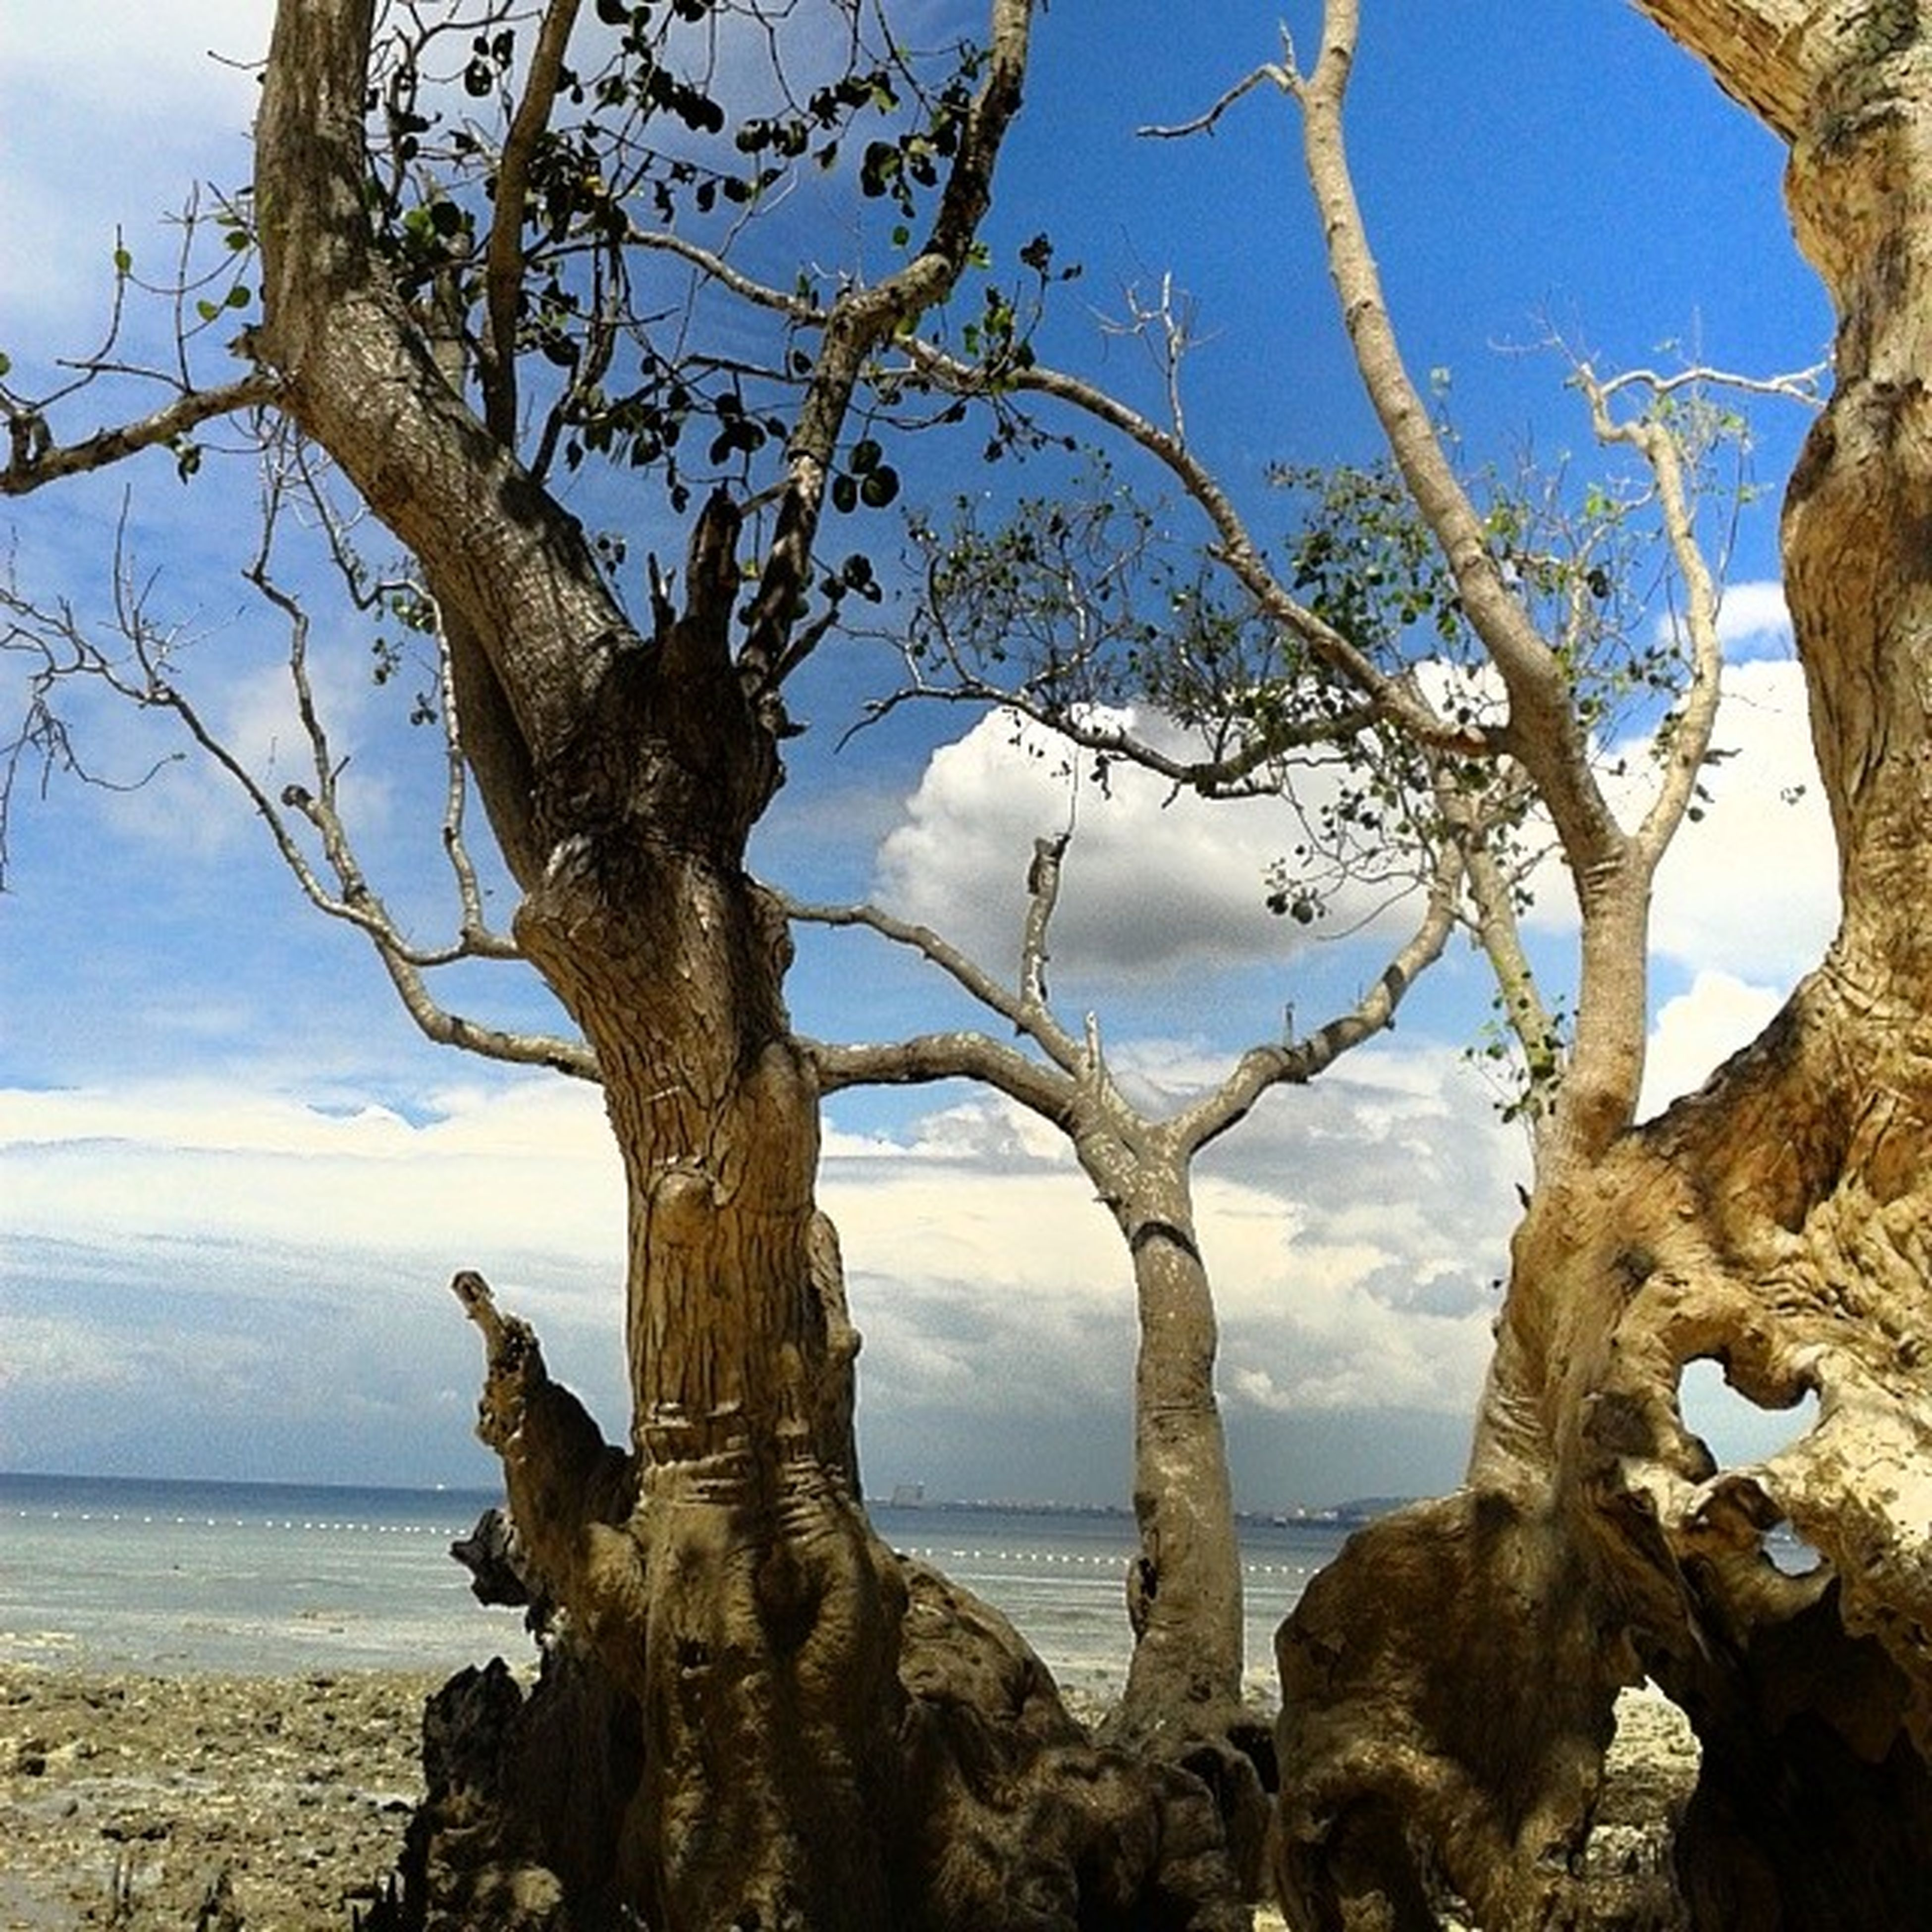 tree trunk, tree, sky, branch, tranquility, bare tree, nature, tranquil scene, scenics, beauty in nature, dead plant, day, sea, no people, outdoors, low angle view, rock - object, textured, beach, landscape